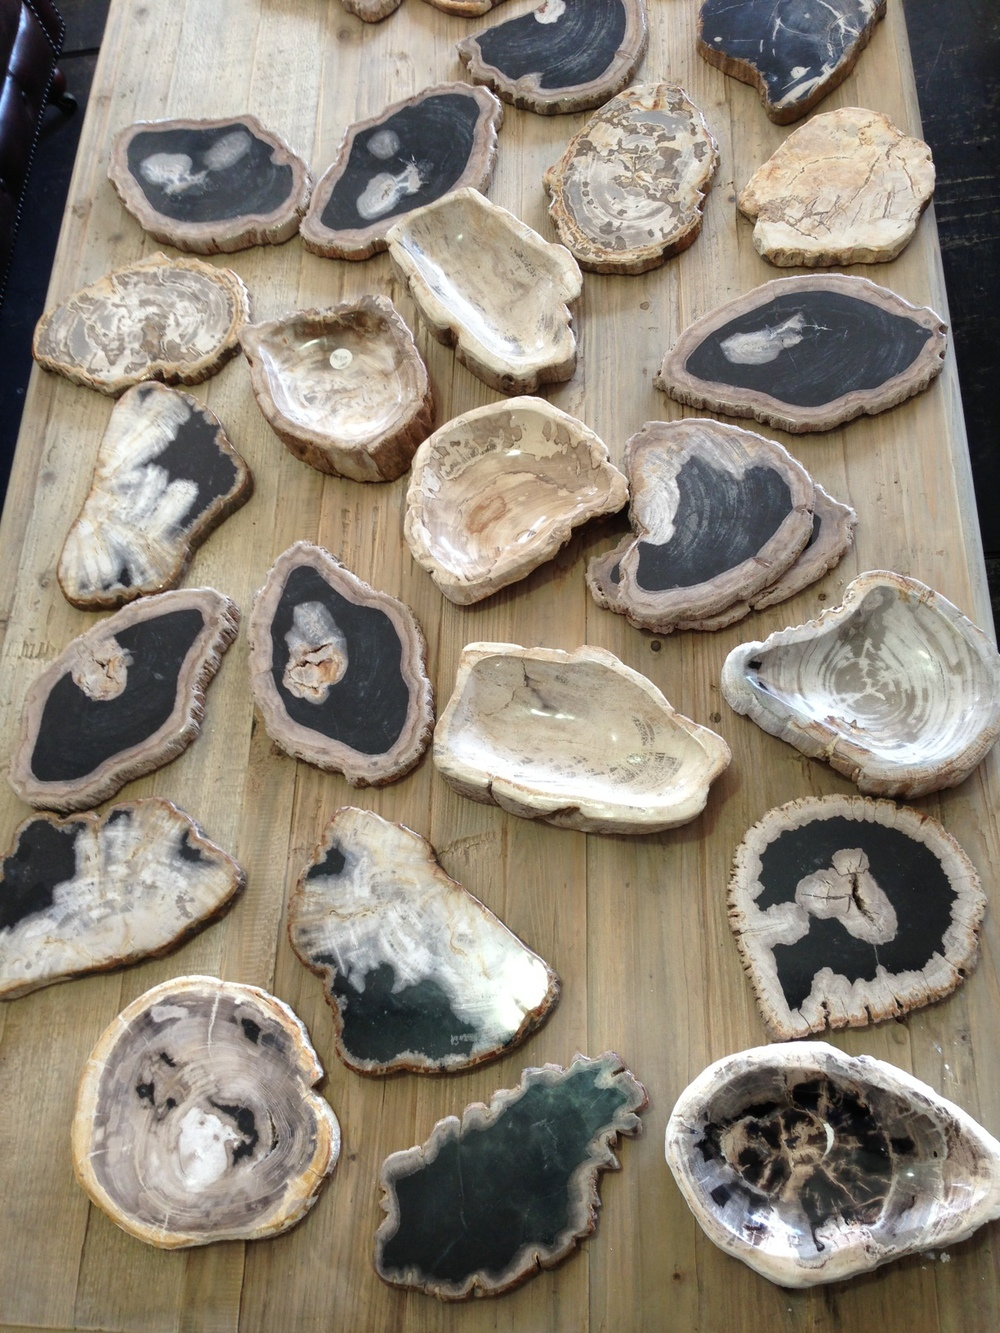 Antique furniture, decor;  petrified wood